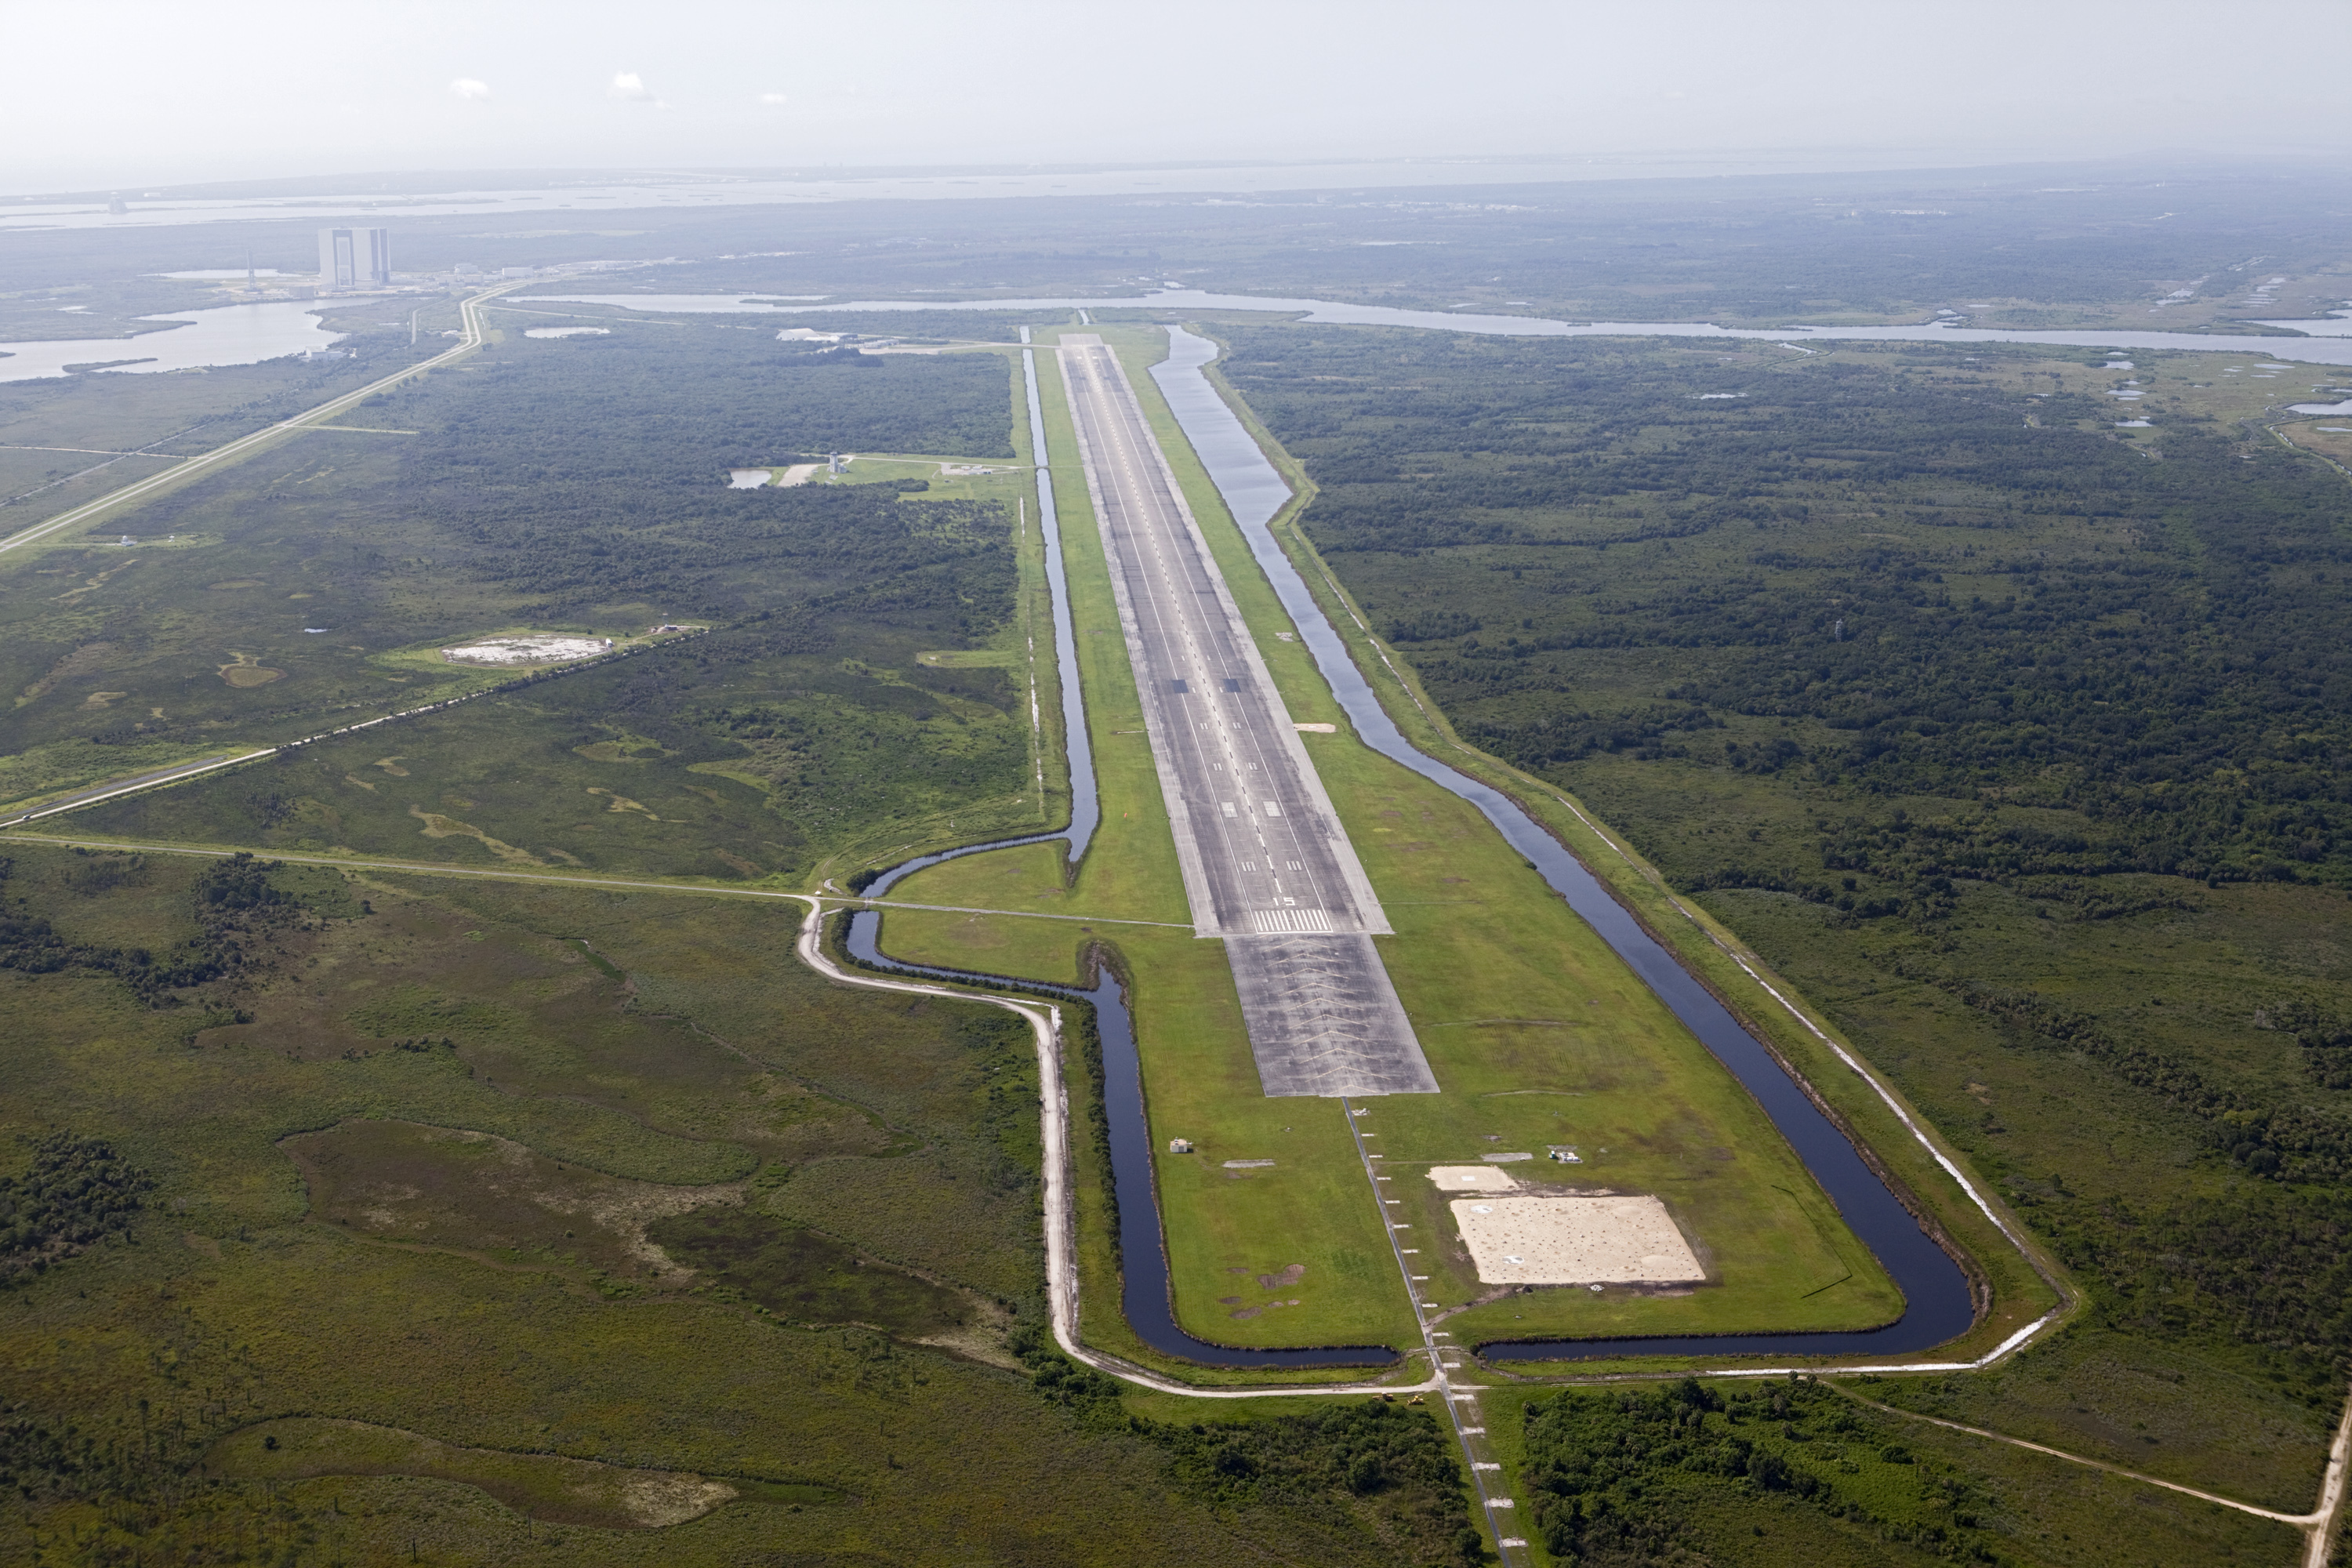 space shuttle runway - photo #4